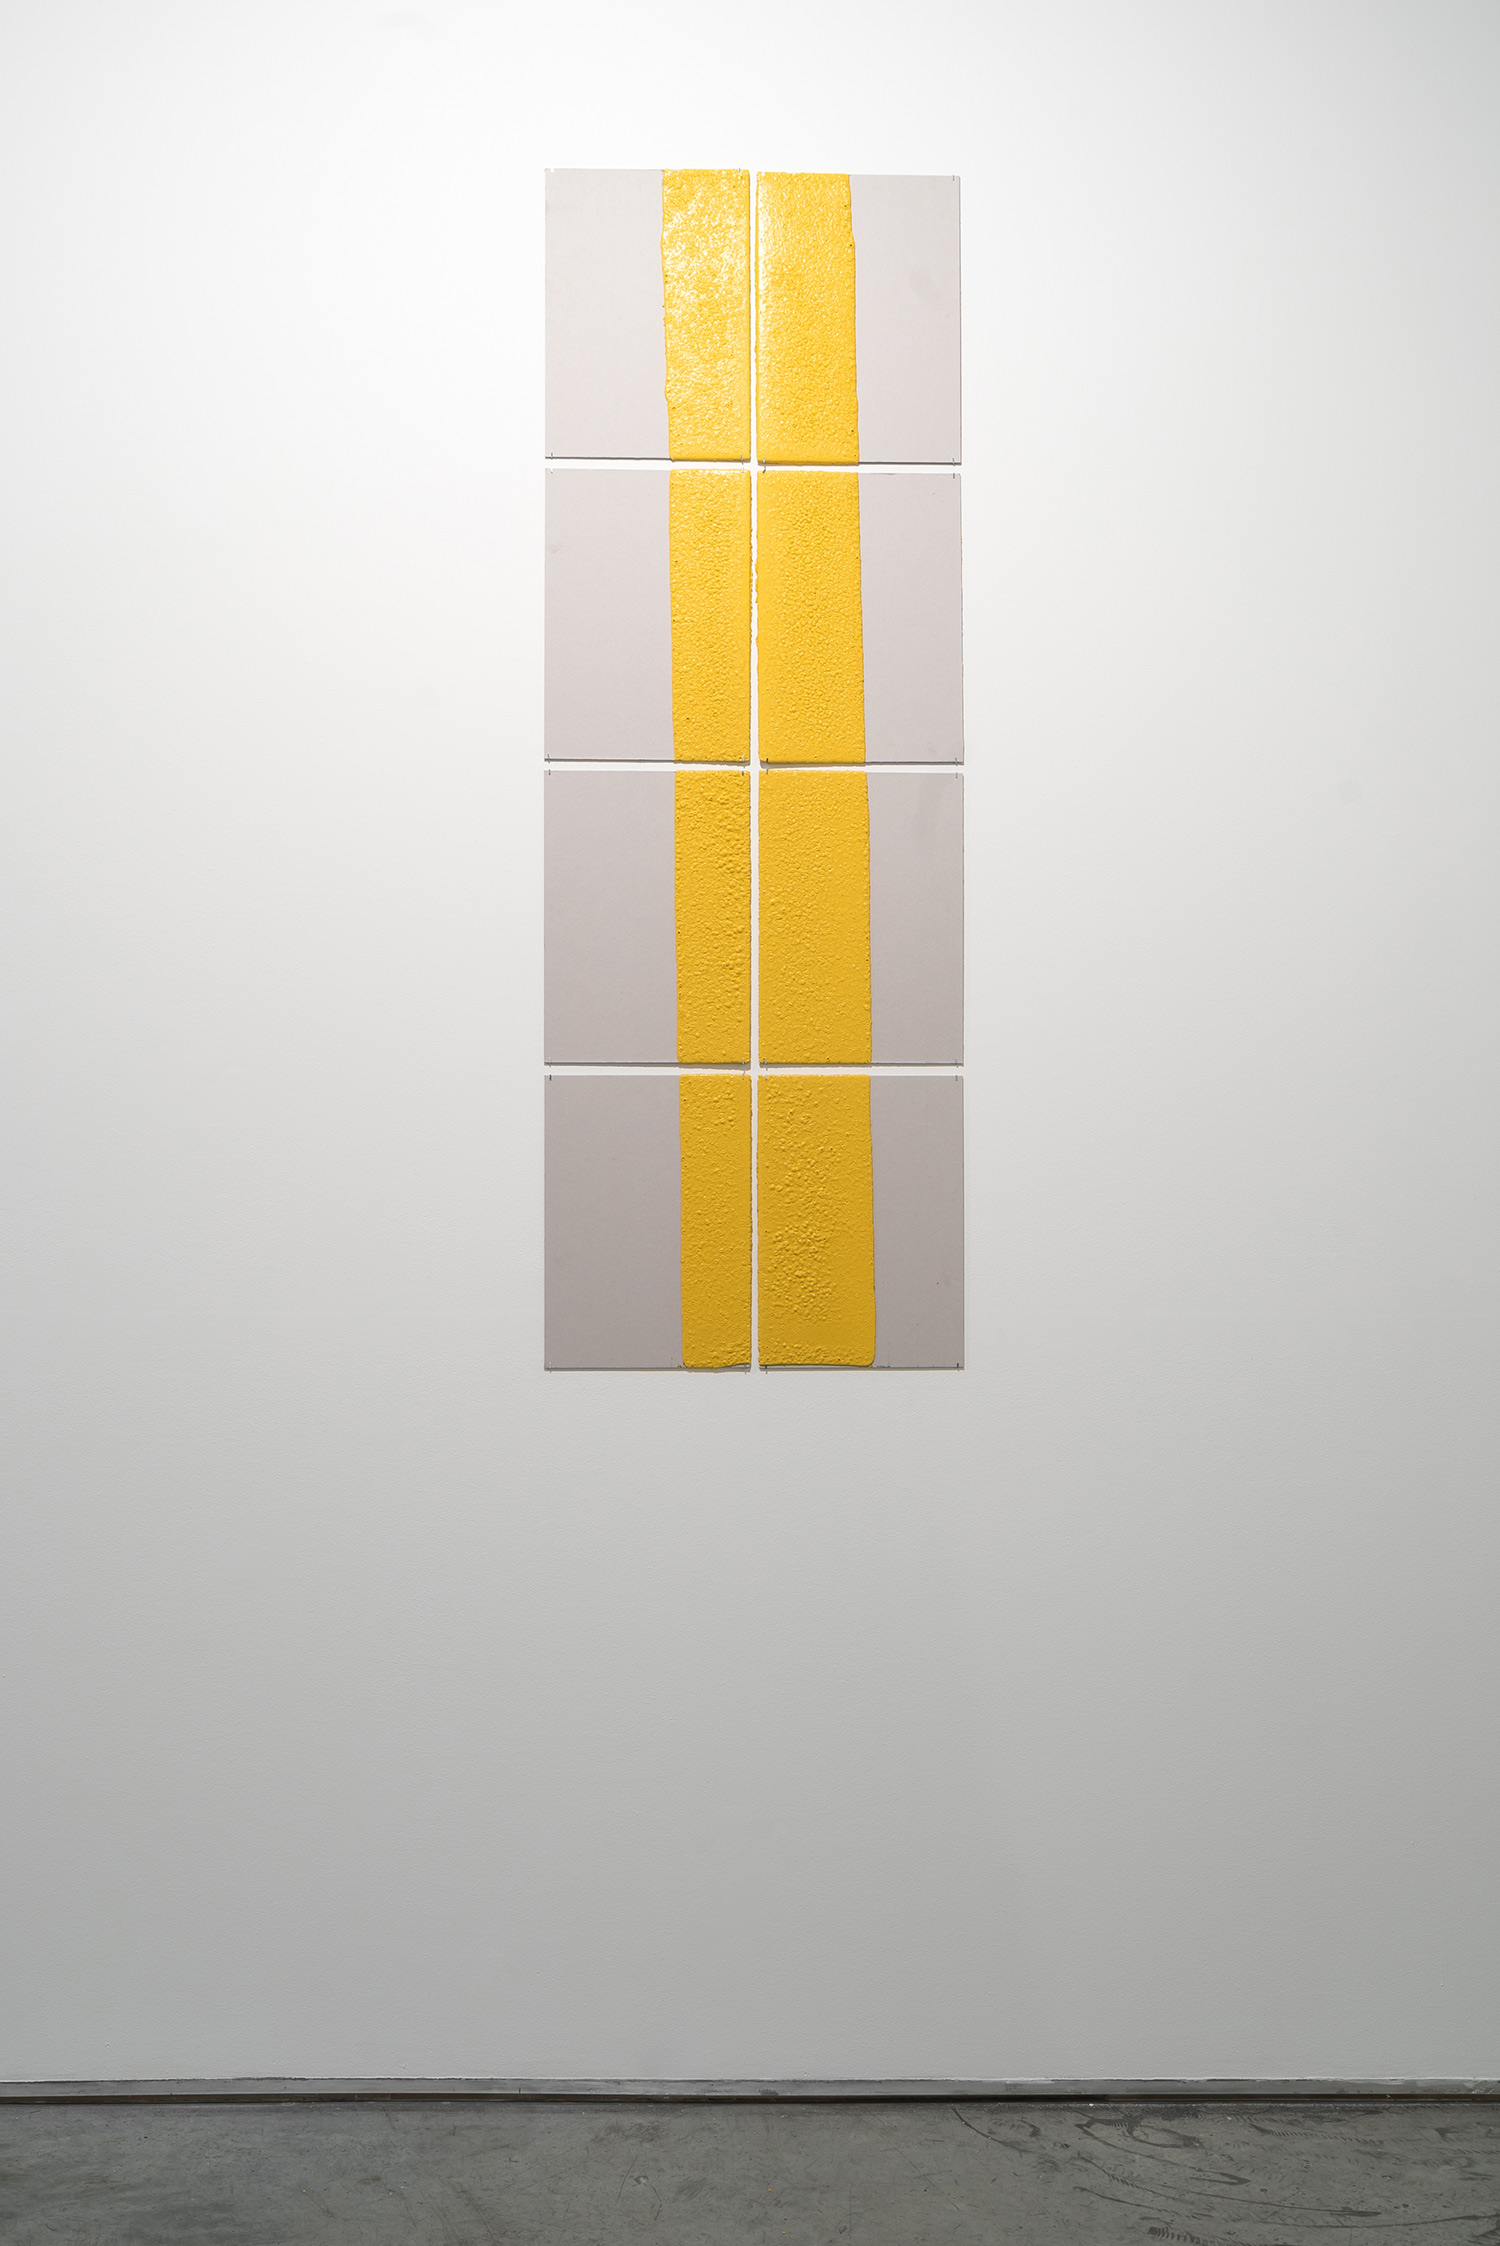 300mm (section) (W), 5mm (T), Yellow, Rumble strips warning marking (650), hand marking, remarking, E44 Al Awir Road, LP ?,  2017  Set of 8 works  Thermoplastic paint and reflective glass particles on grey boards  50 x 35 cm each